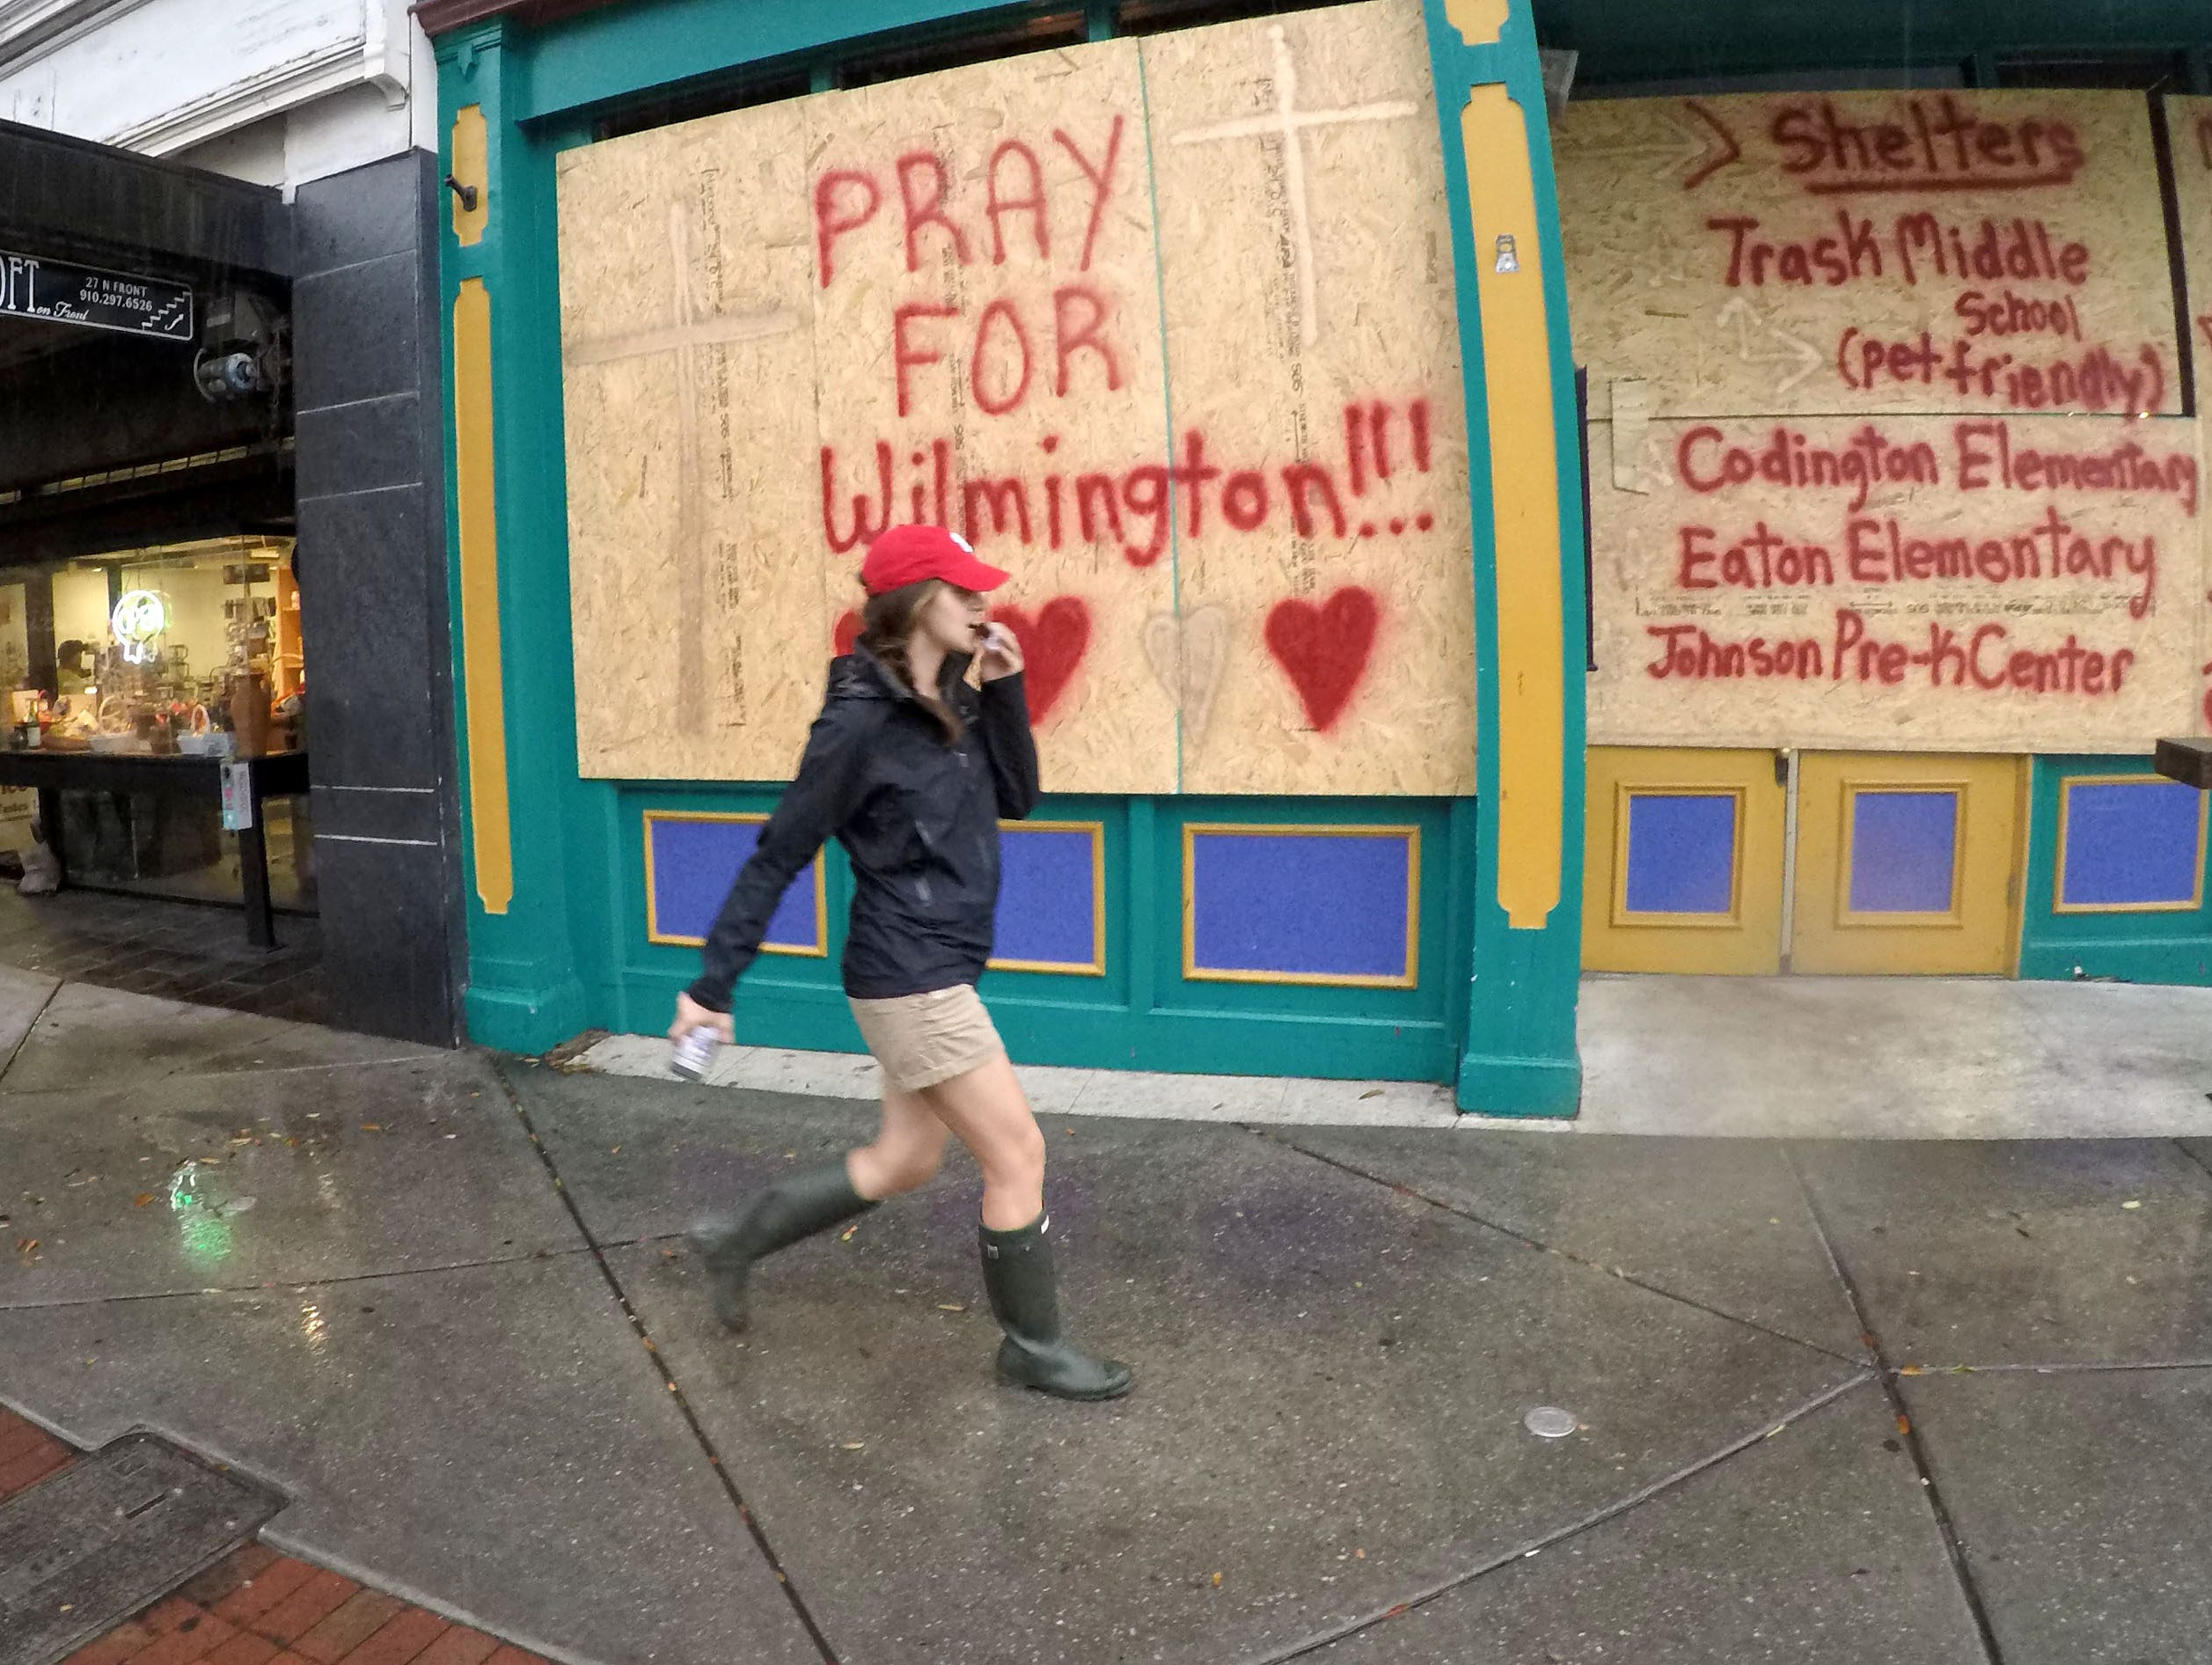 A woman walks by a business with plywood with Pray for Wilmington and a list of shelters, in downtown Wilmington, North Carolina on Thursday, September 13, 2018. (Ken Ruinard / Greenville News / Gannett USA Today Network / 2018 )